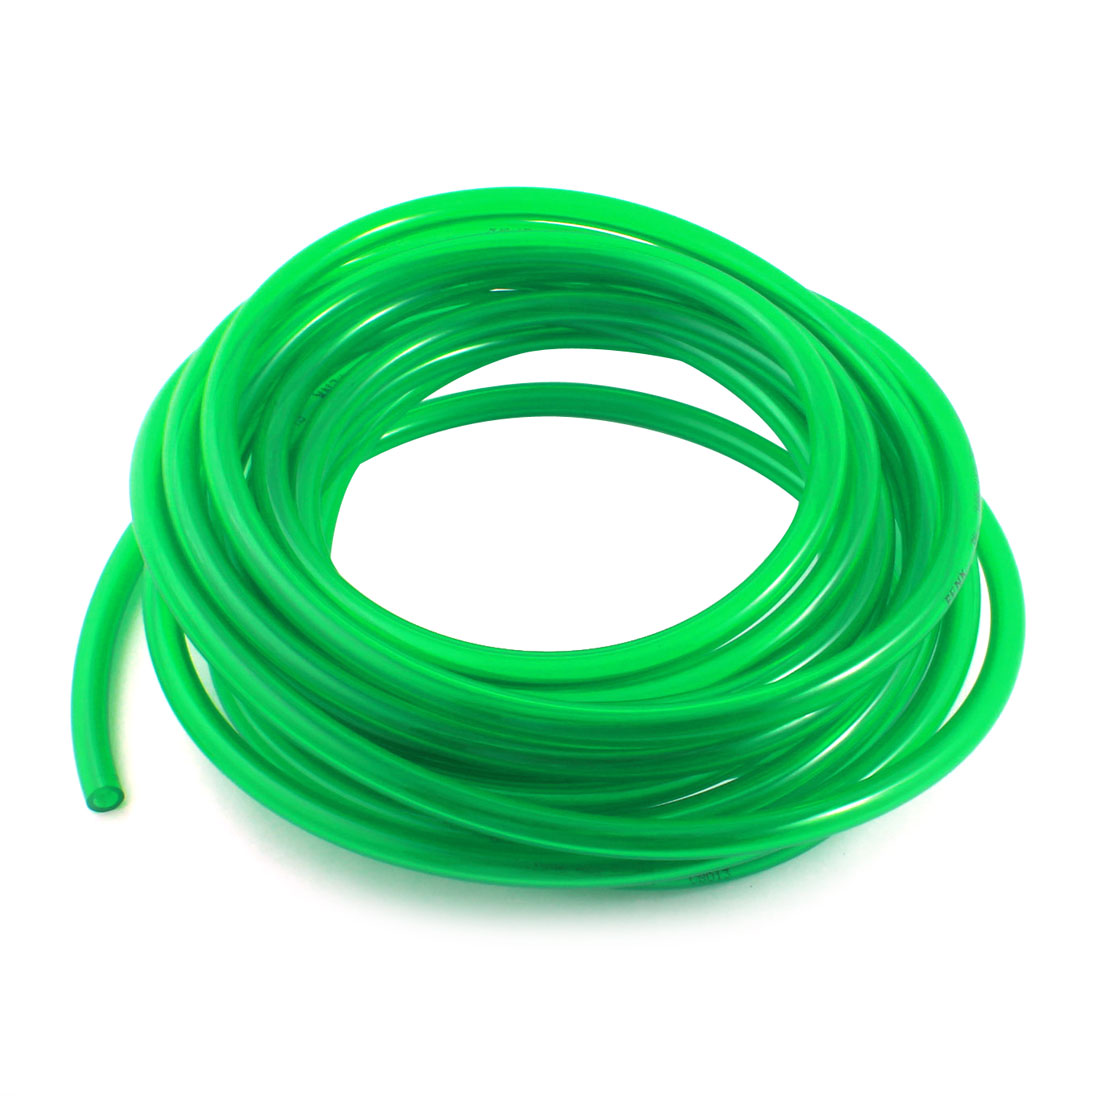 Engine Gas Fuel Oil Injection PU Line Tubing Tube 6.5mmx10mm 33Ft Clear Green